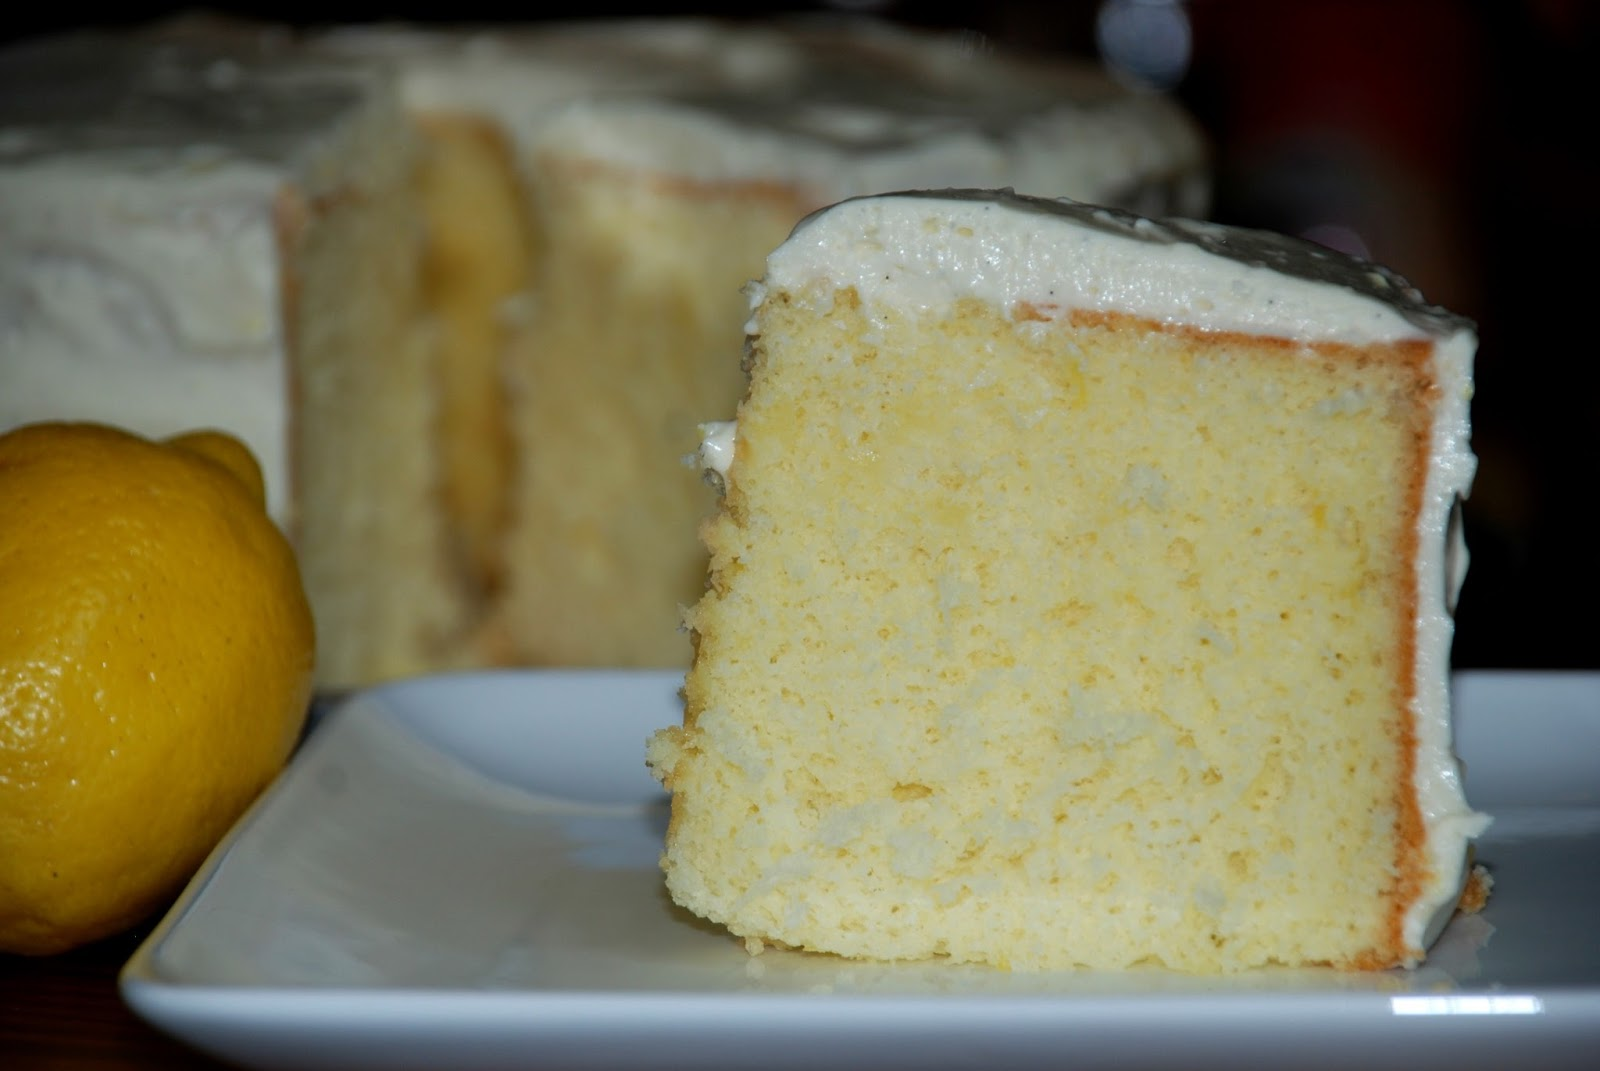 Living Rancho Delux: Baking Partners Challenge - Lemon Chiffon Cake